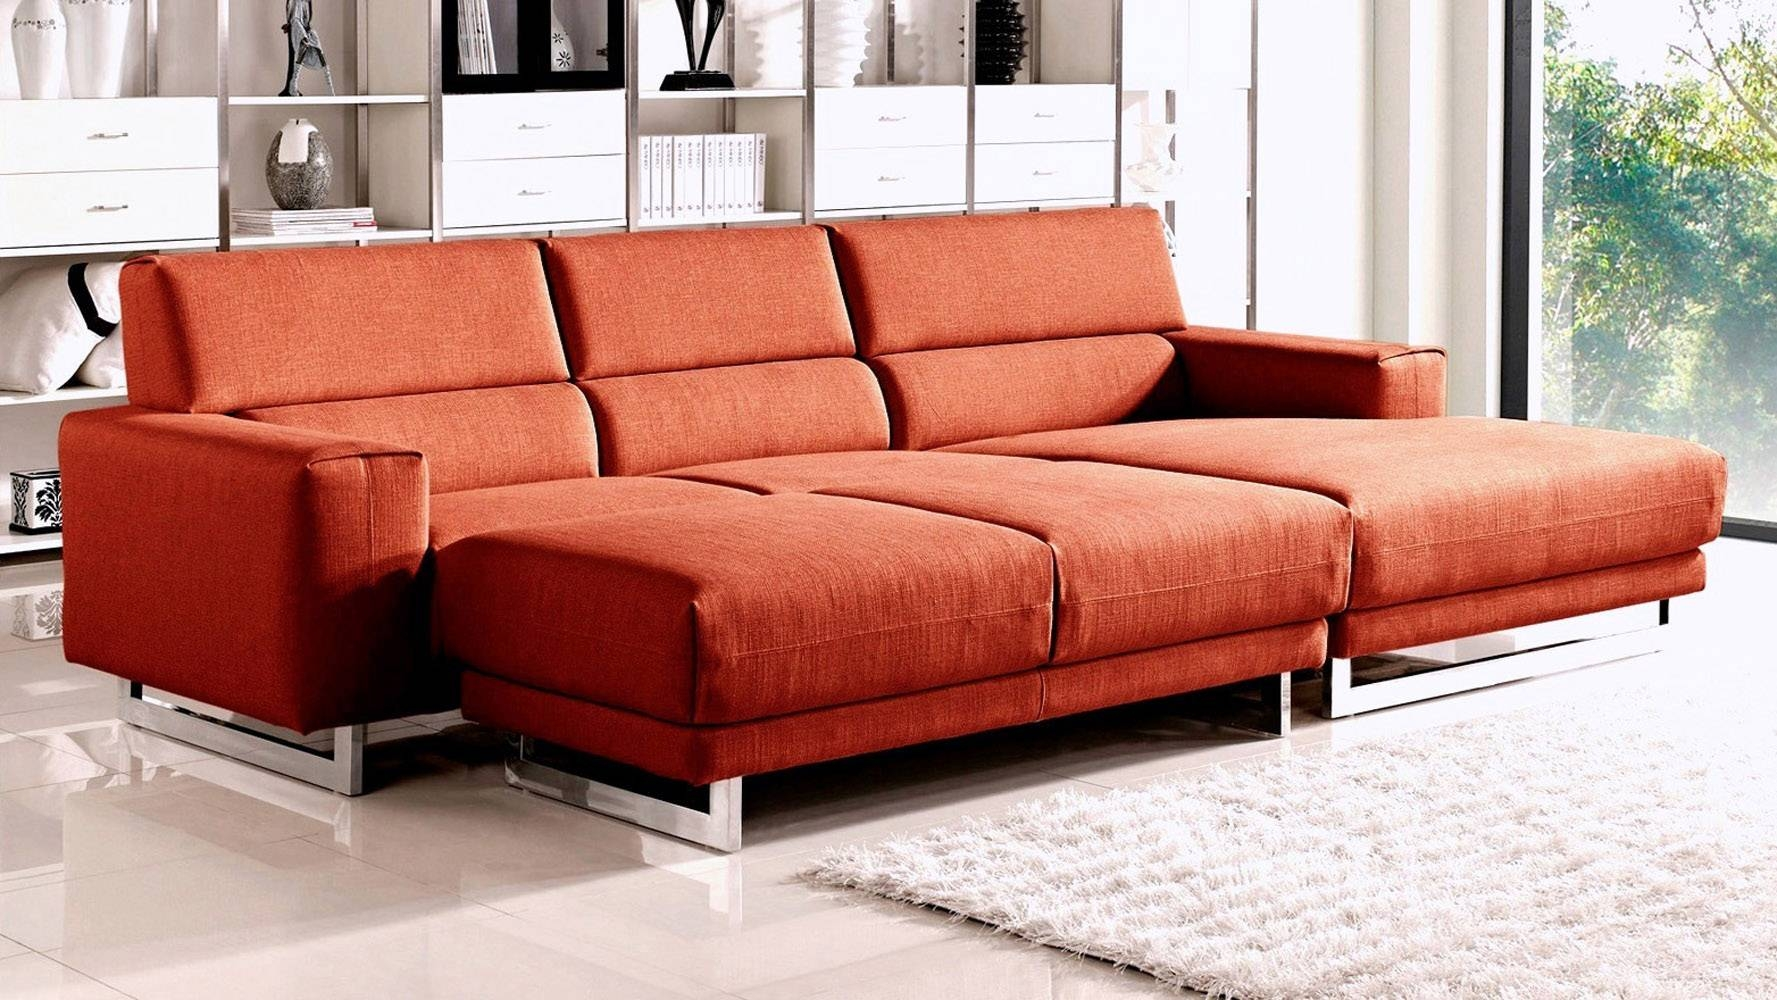 Fabric Diva Sectional Sofa With Sleeper Ottoman | Zuri Furniture with regard to Red Sectional Sleeper Sofas (Image 7 of 30)